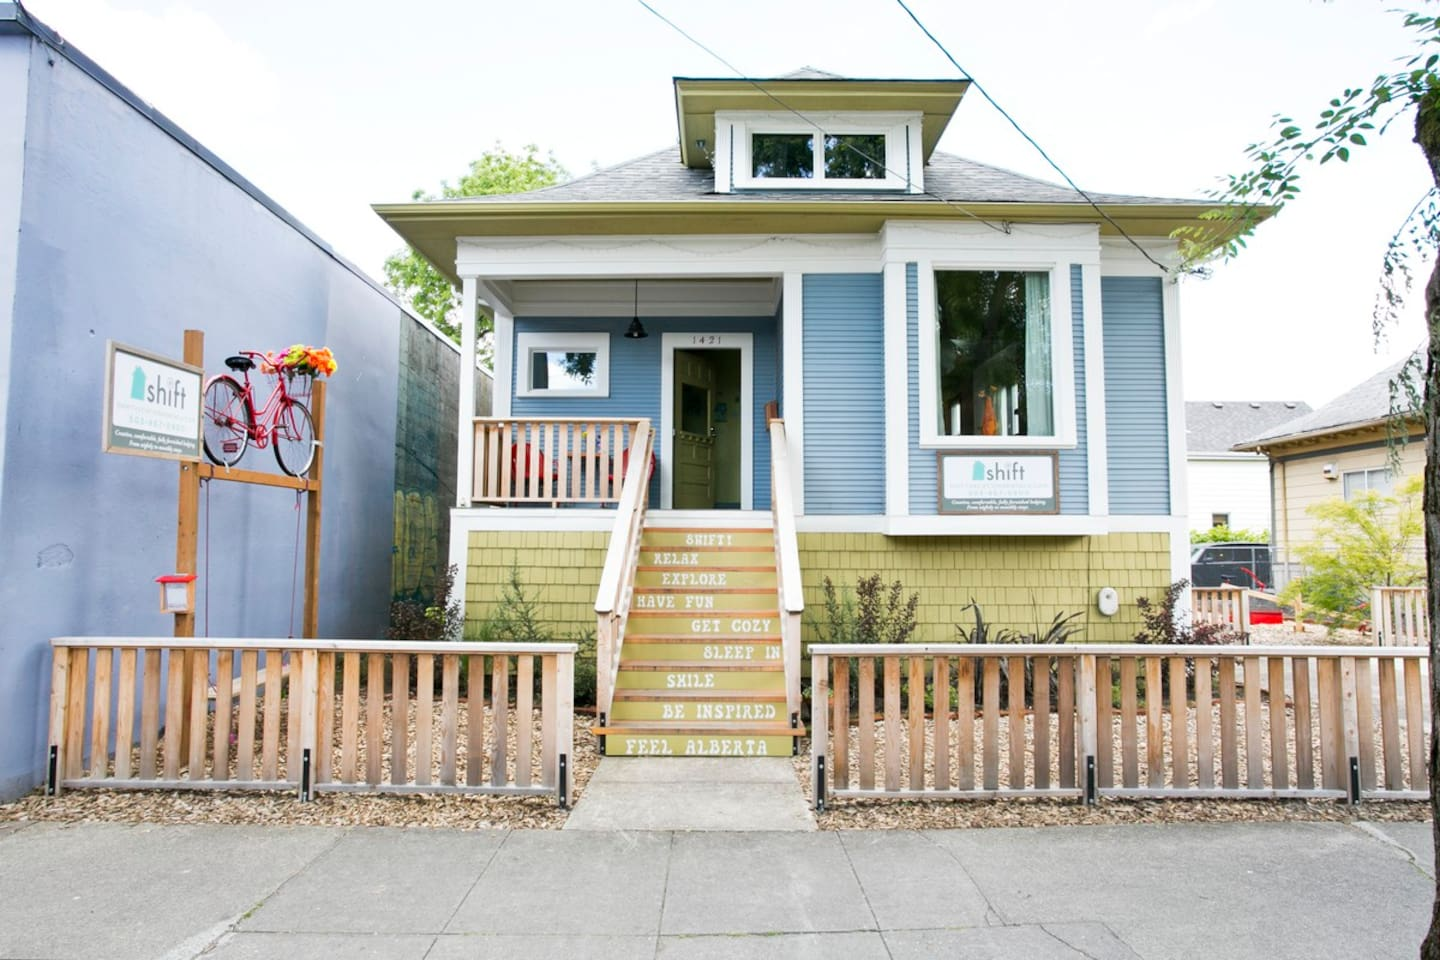 Sitting in the heart of NE Alberta Street, one of Portland's most artistic and vibrant neighborhoods Shift Vacation Rentals is an ideal spot!